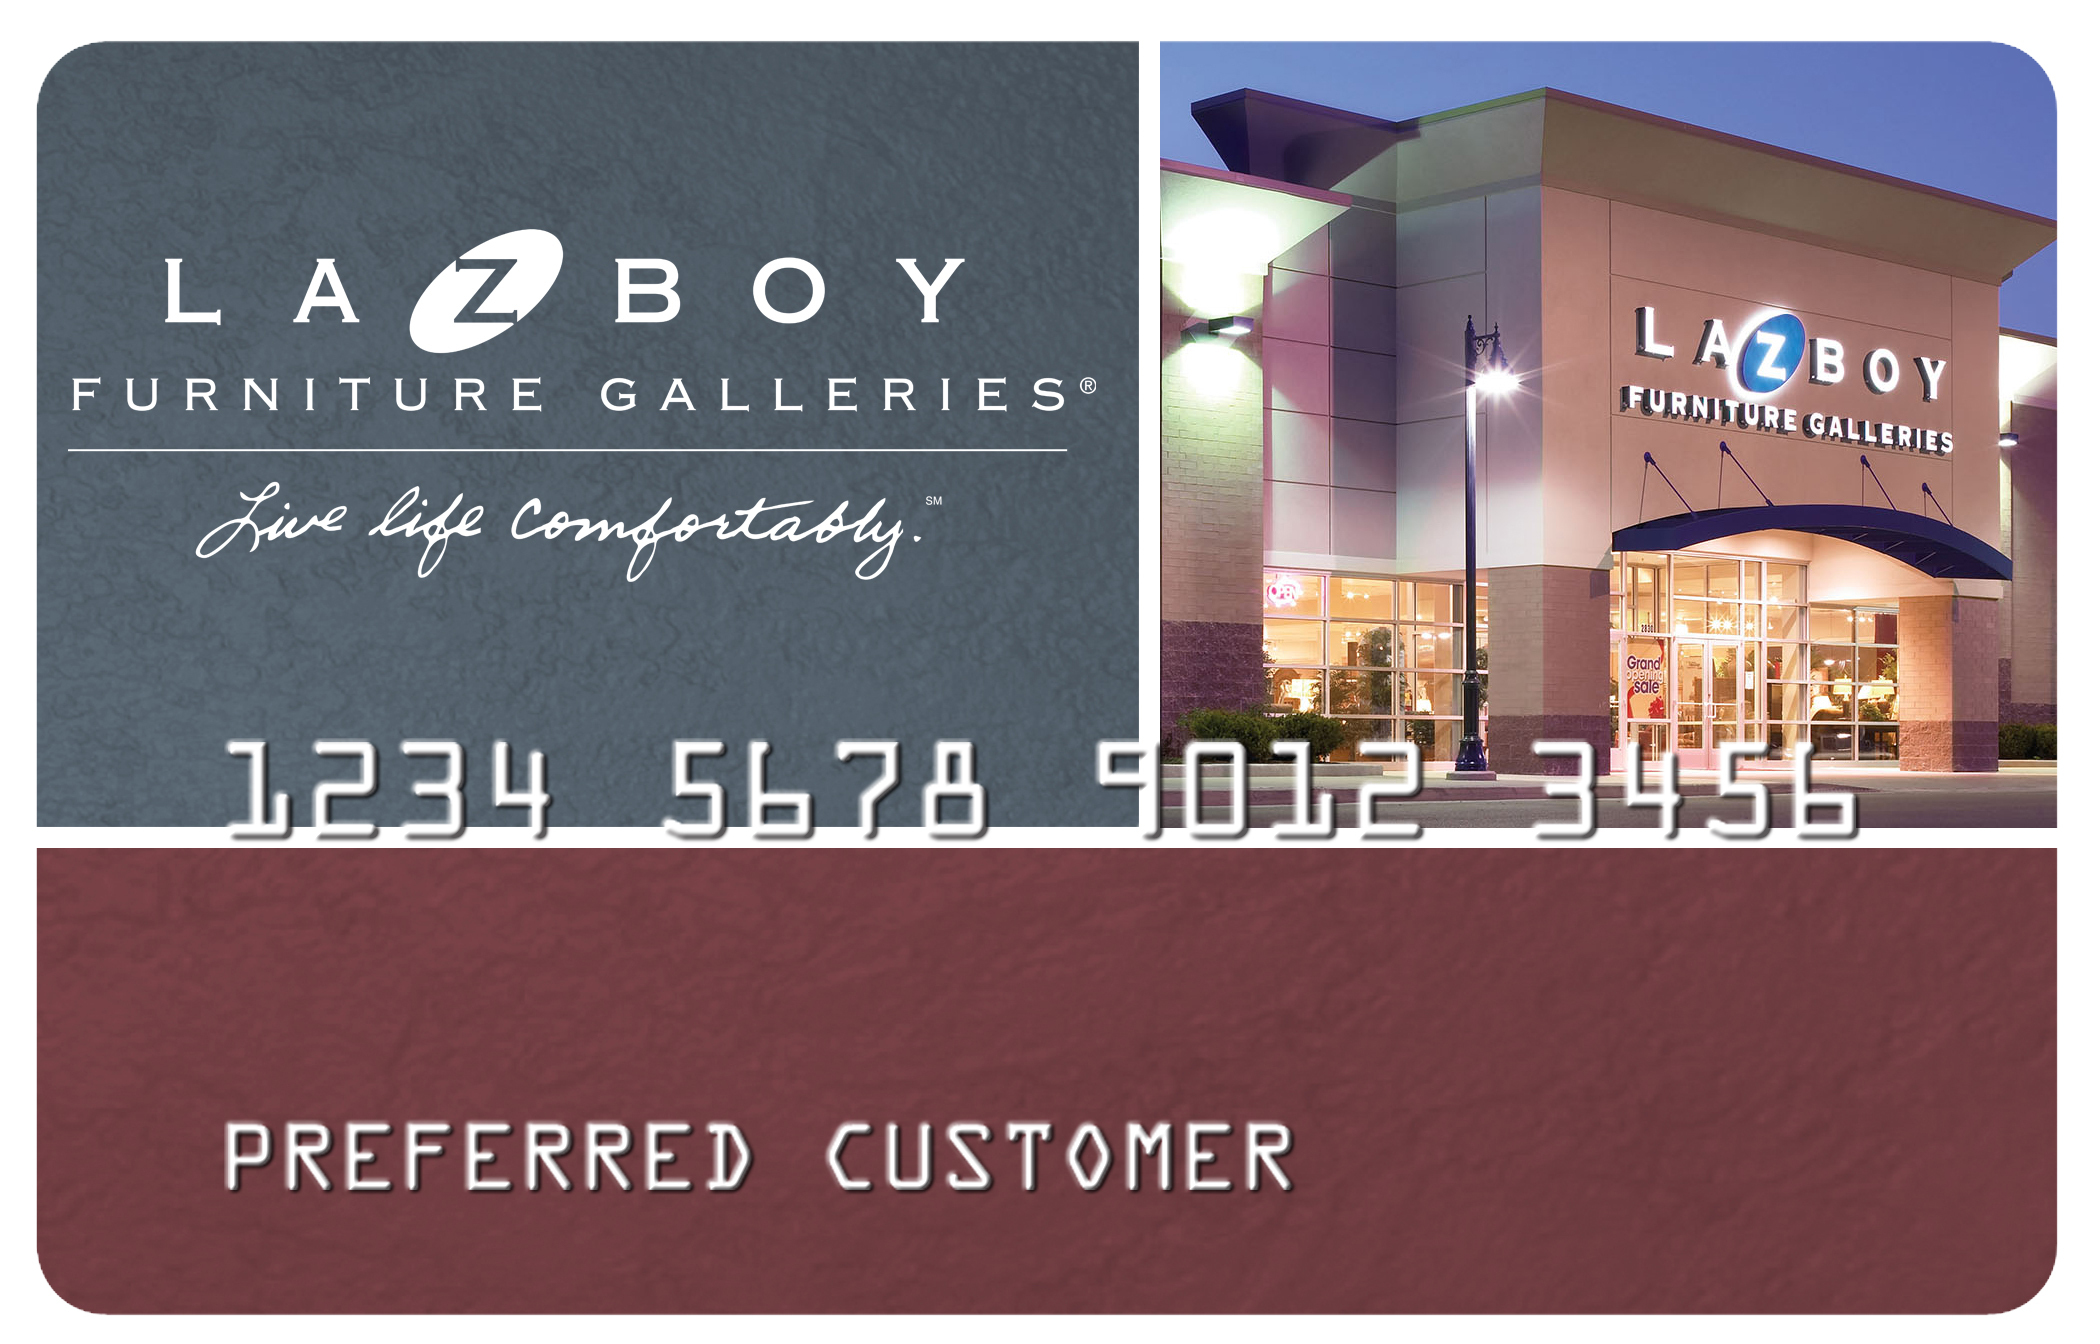 Synchrony Financial And La Z Boy Extend Consumer Credit Card